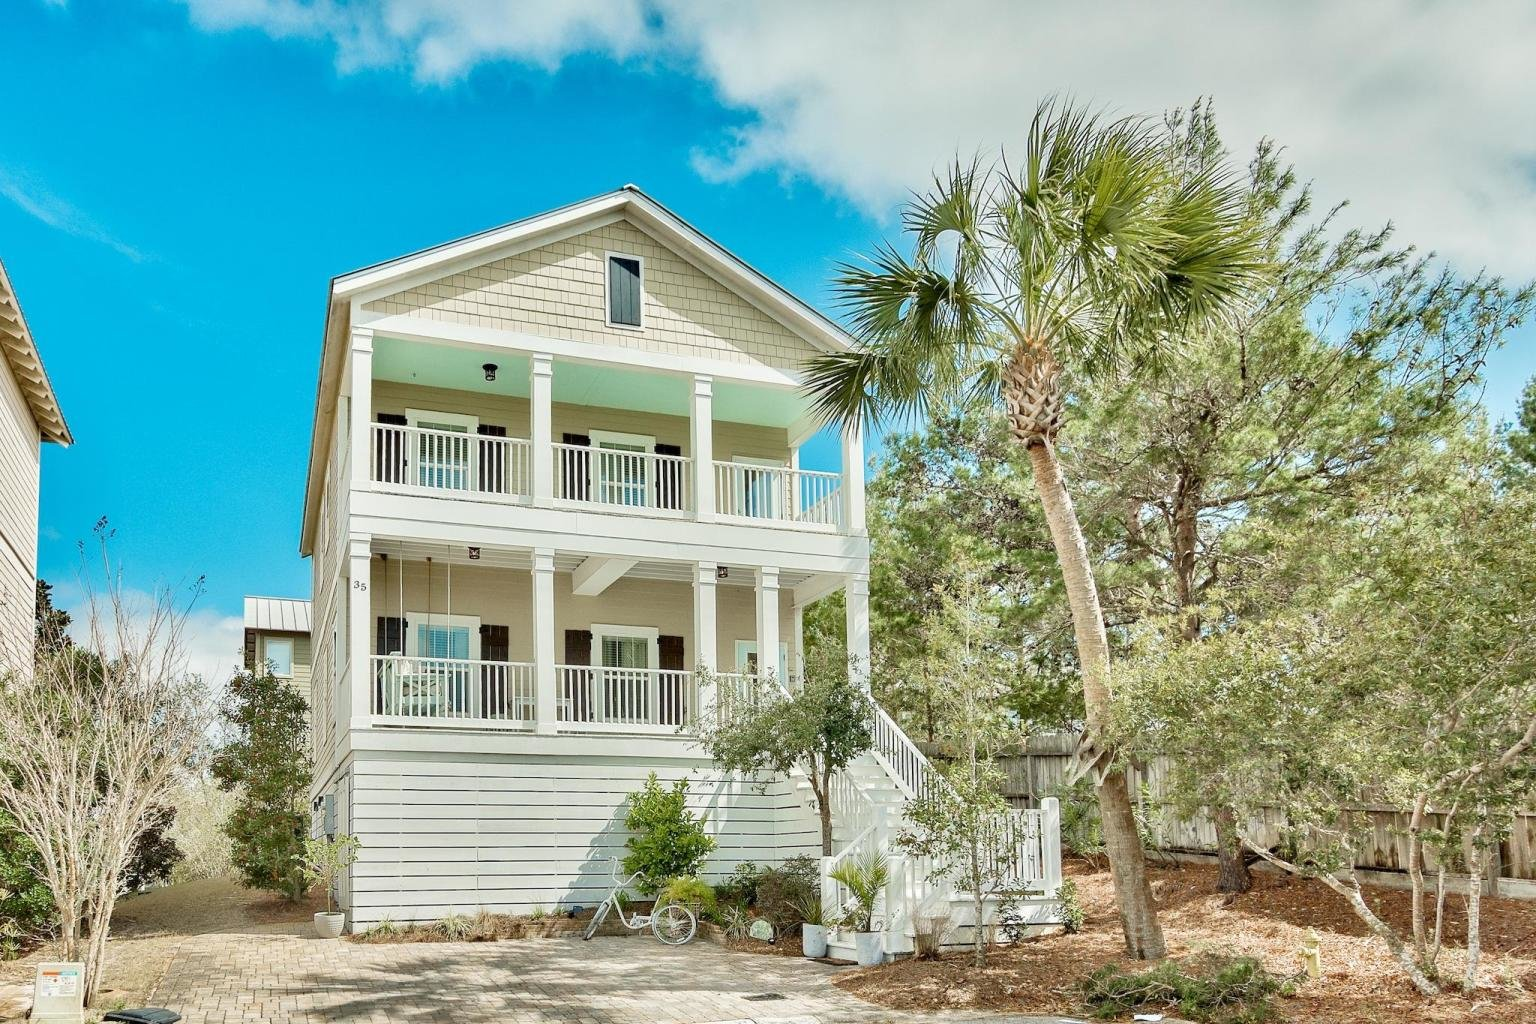 Home in Village at Blue Mountain Beach - just reduced